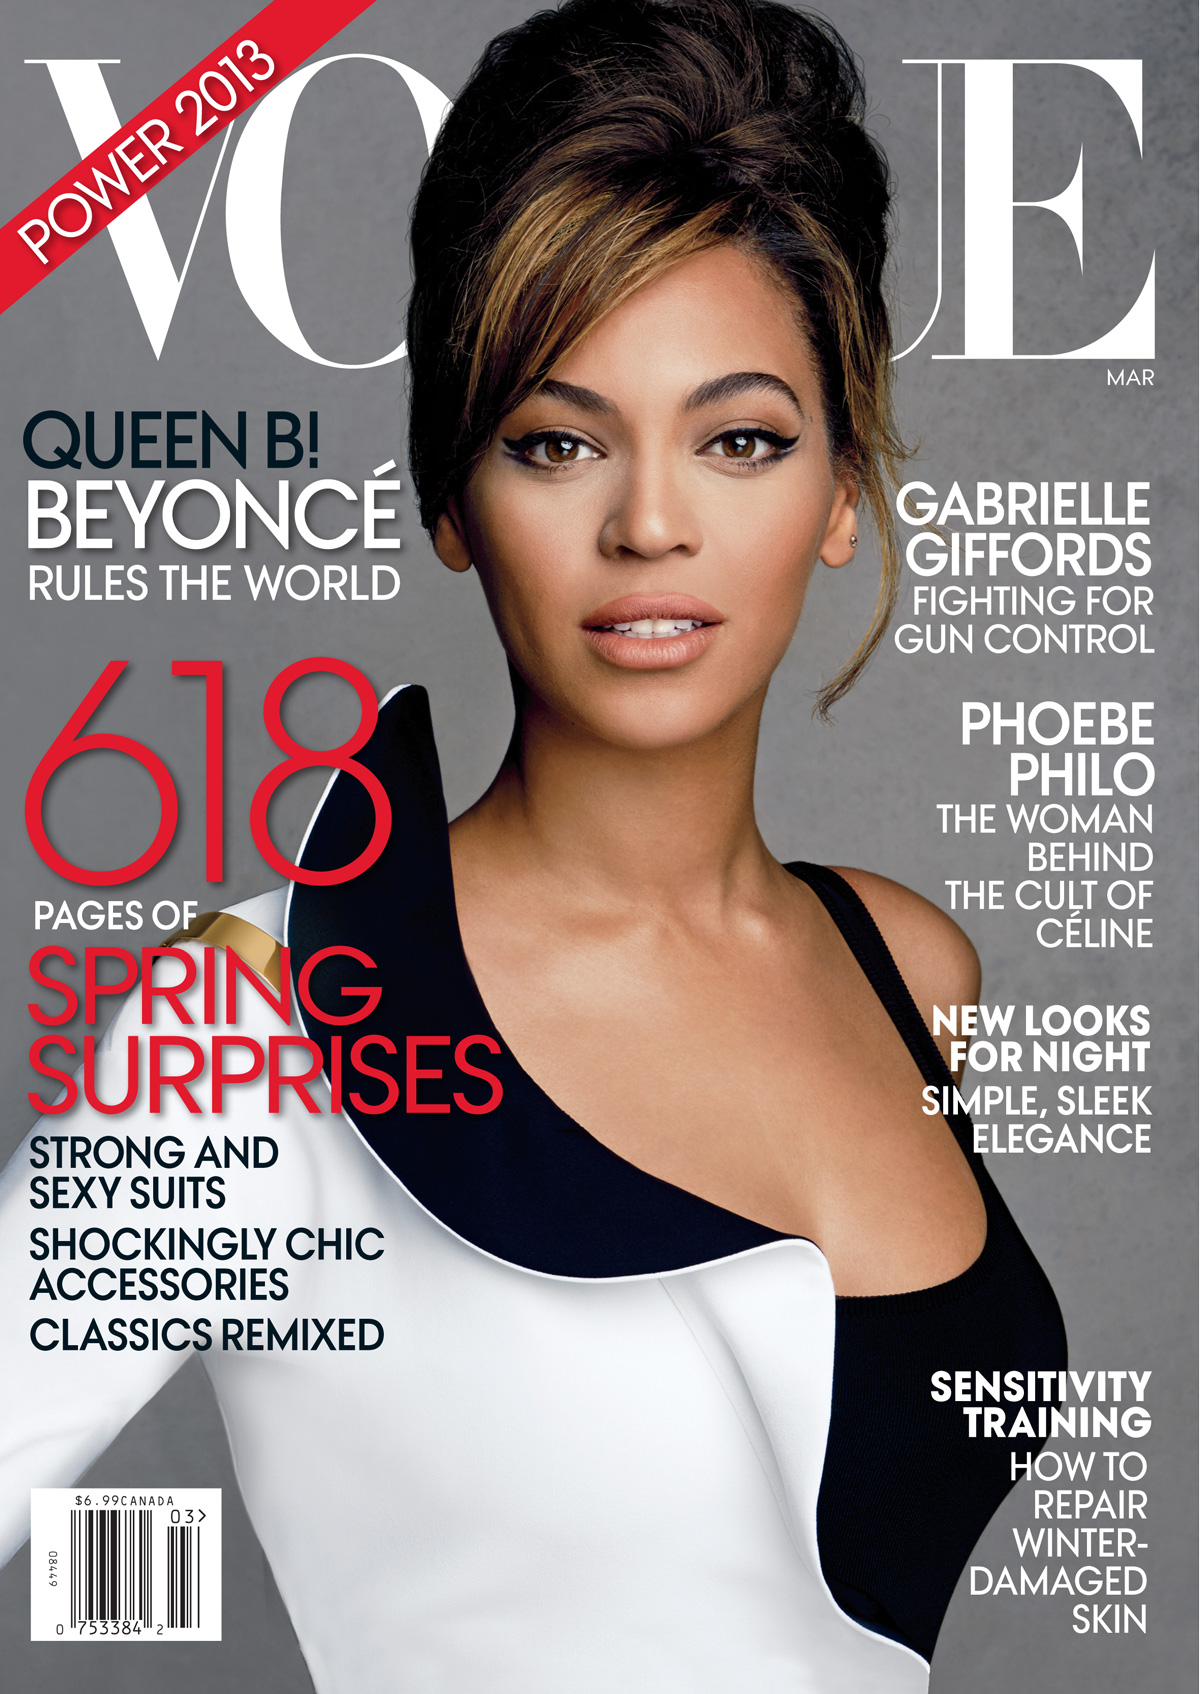 Vogue Magazine: Celebrity Covers, Subscriptions, and More ...